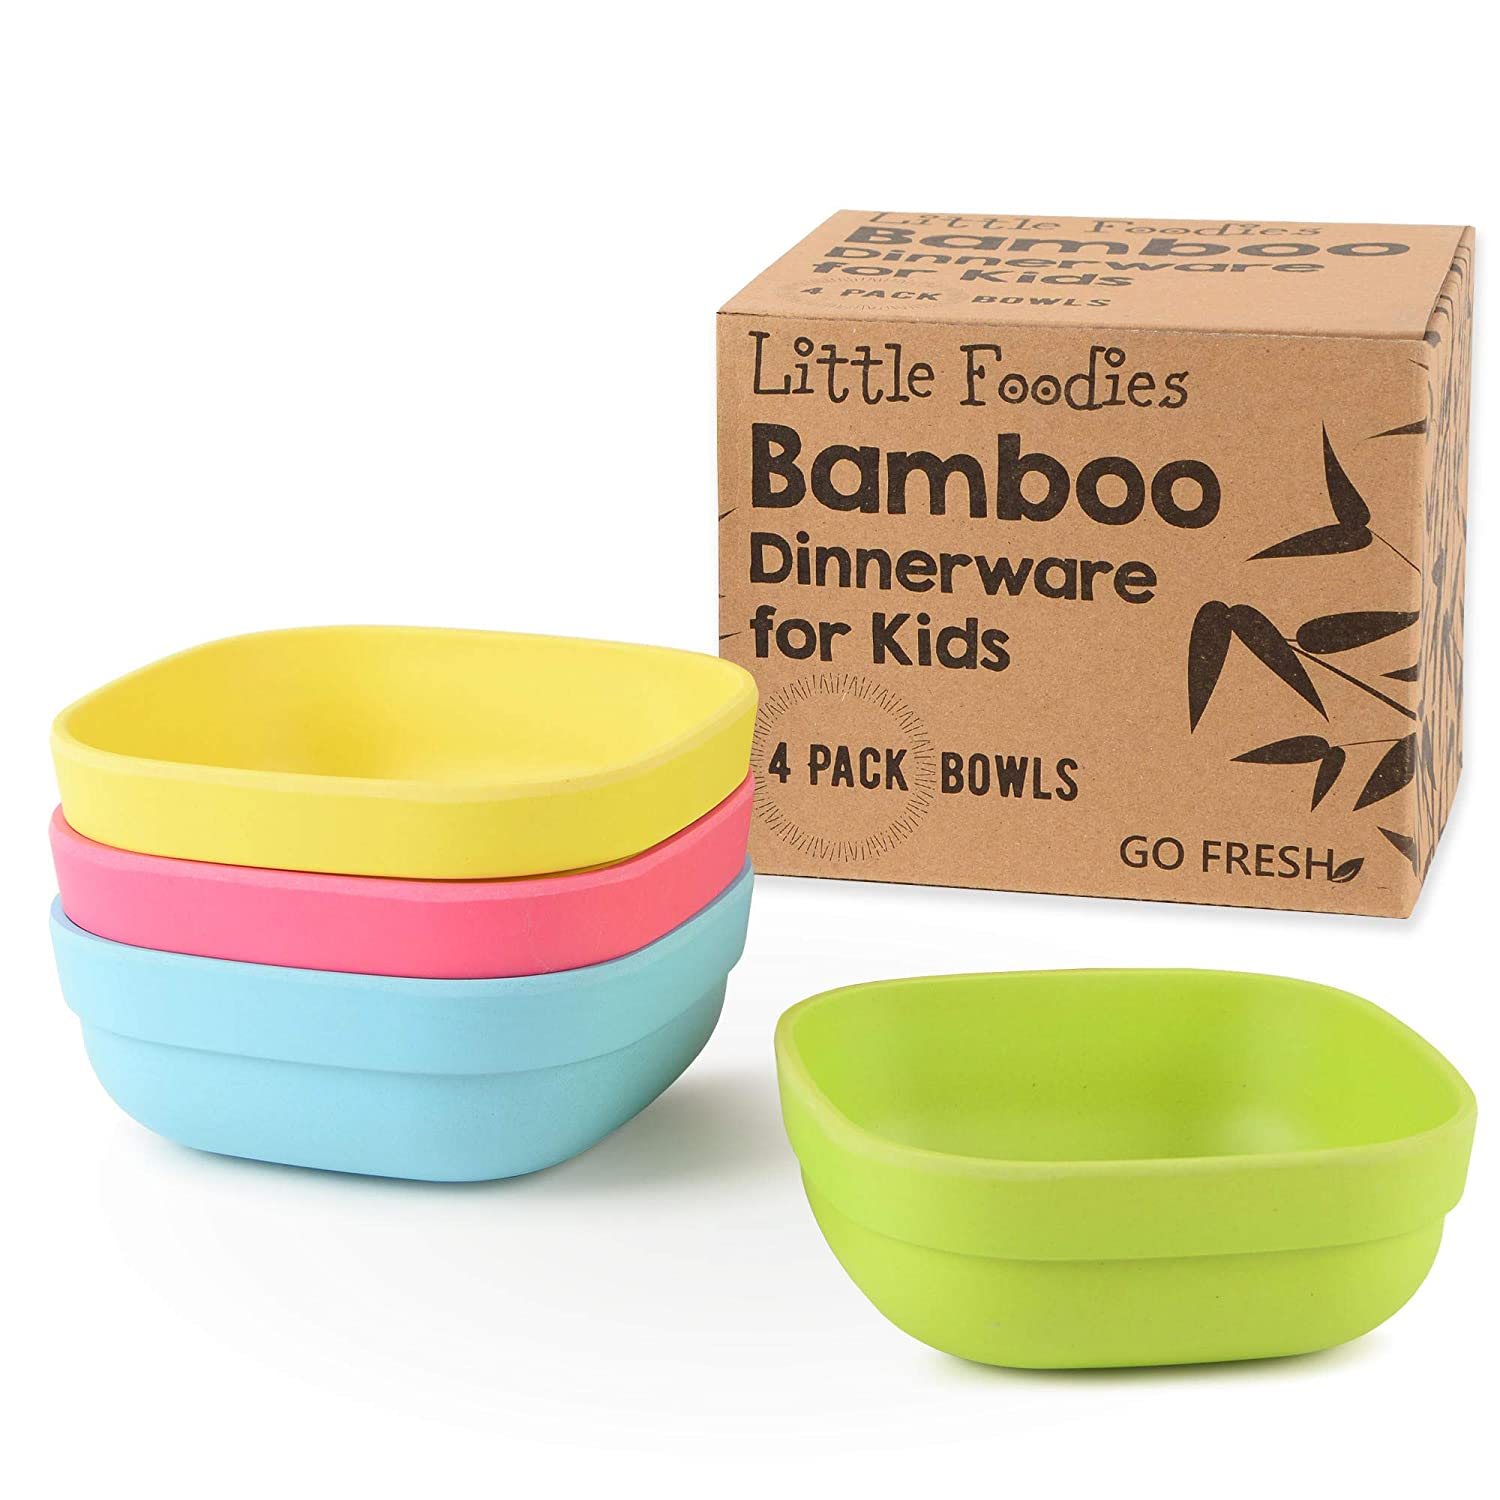 GO FRESH Bamboo Kids Bowls, Set of 4 kids bamboo dinnerware for everyday use, Eco-friendly kids bamboo bowls, BPA Free, Dishwasher safe and Stackable BRIGHTMAN INDUSTRIAL LTD. 4335470047